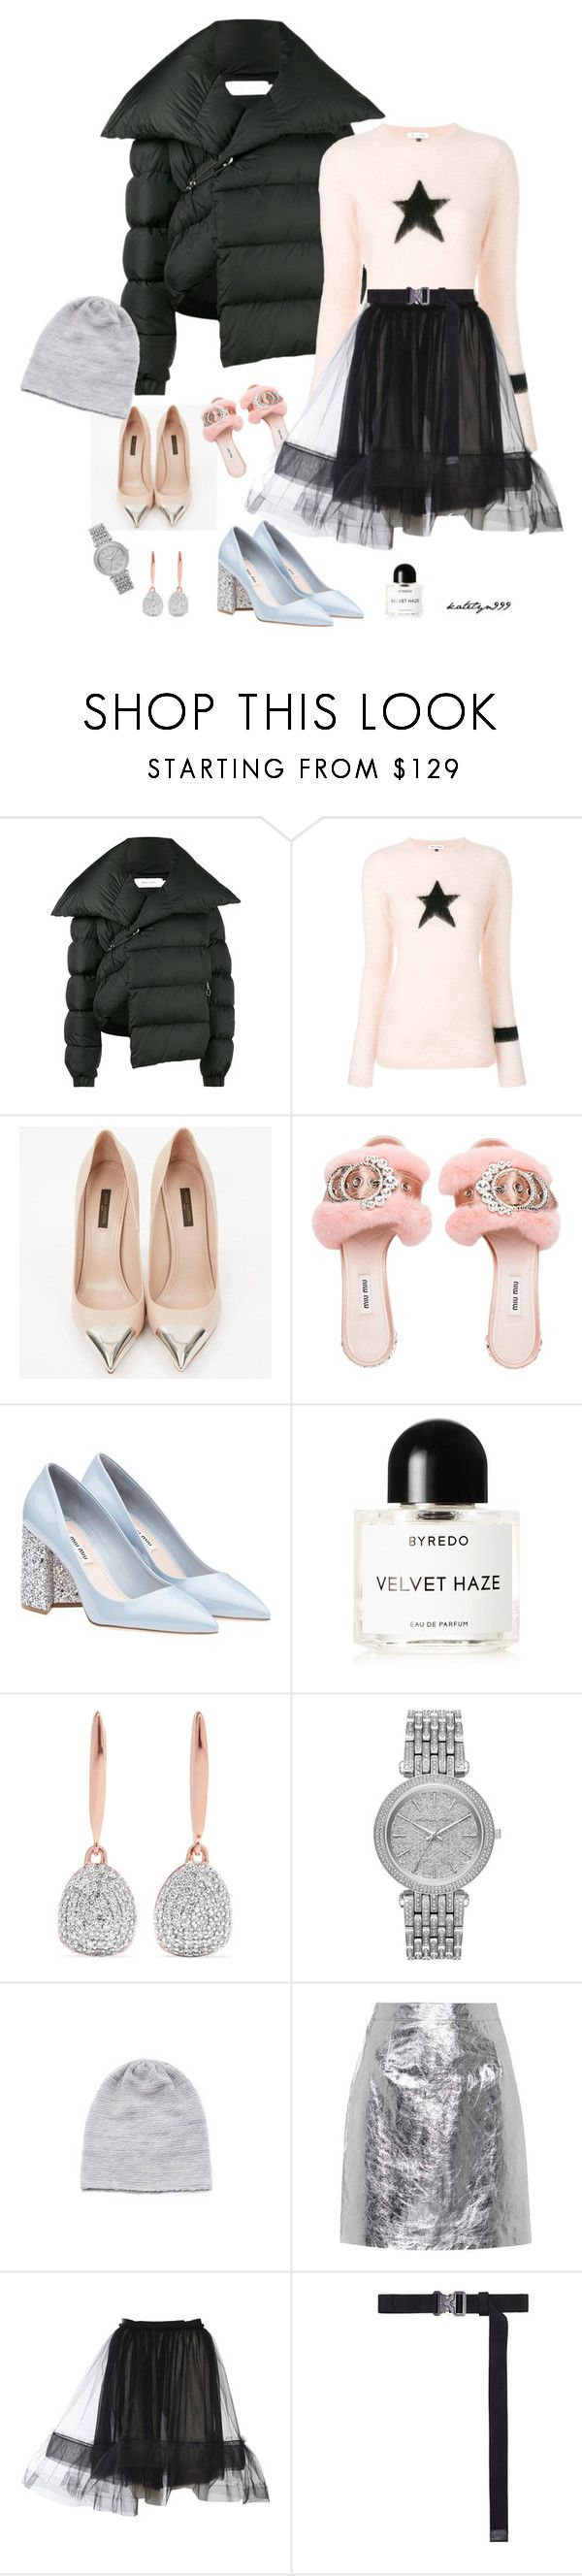 """It's a beautiful day ..."" by katelyn999 ❤ liked on Polyvore featuring Marques'Almeida, Bella Freud, Louis Vuitton, Byredo, Monica Vinader, Michael Kors, Proenza Schouler, Lanvin and Alyx"